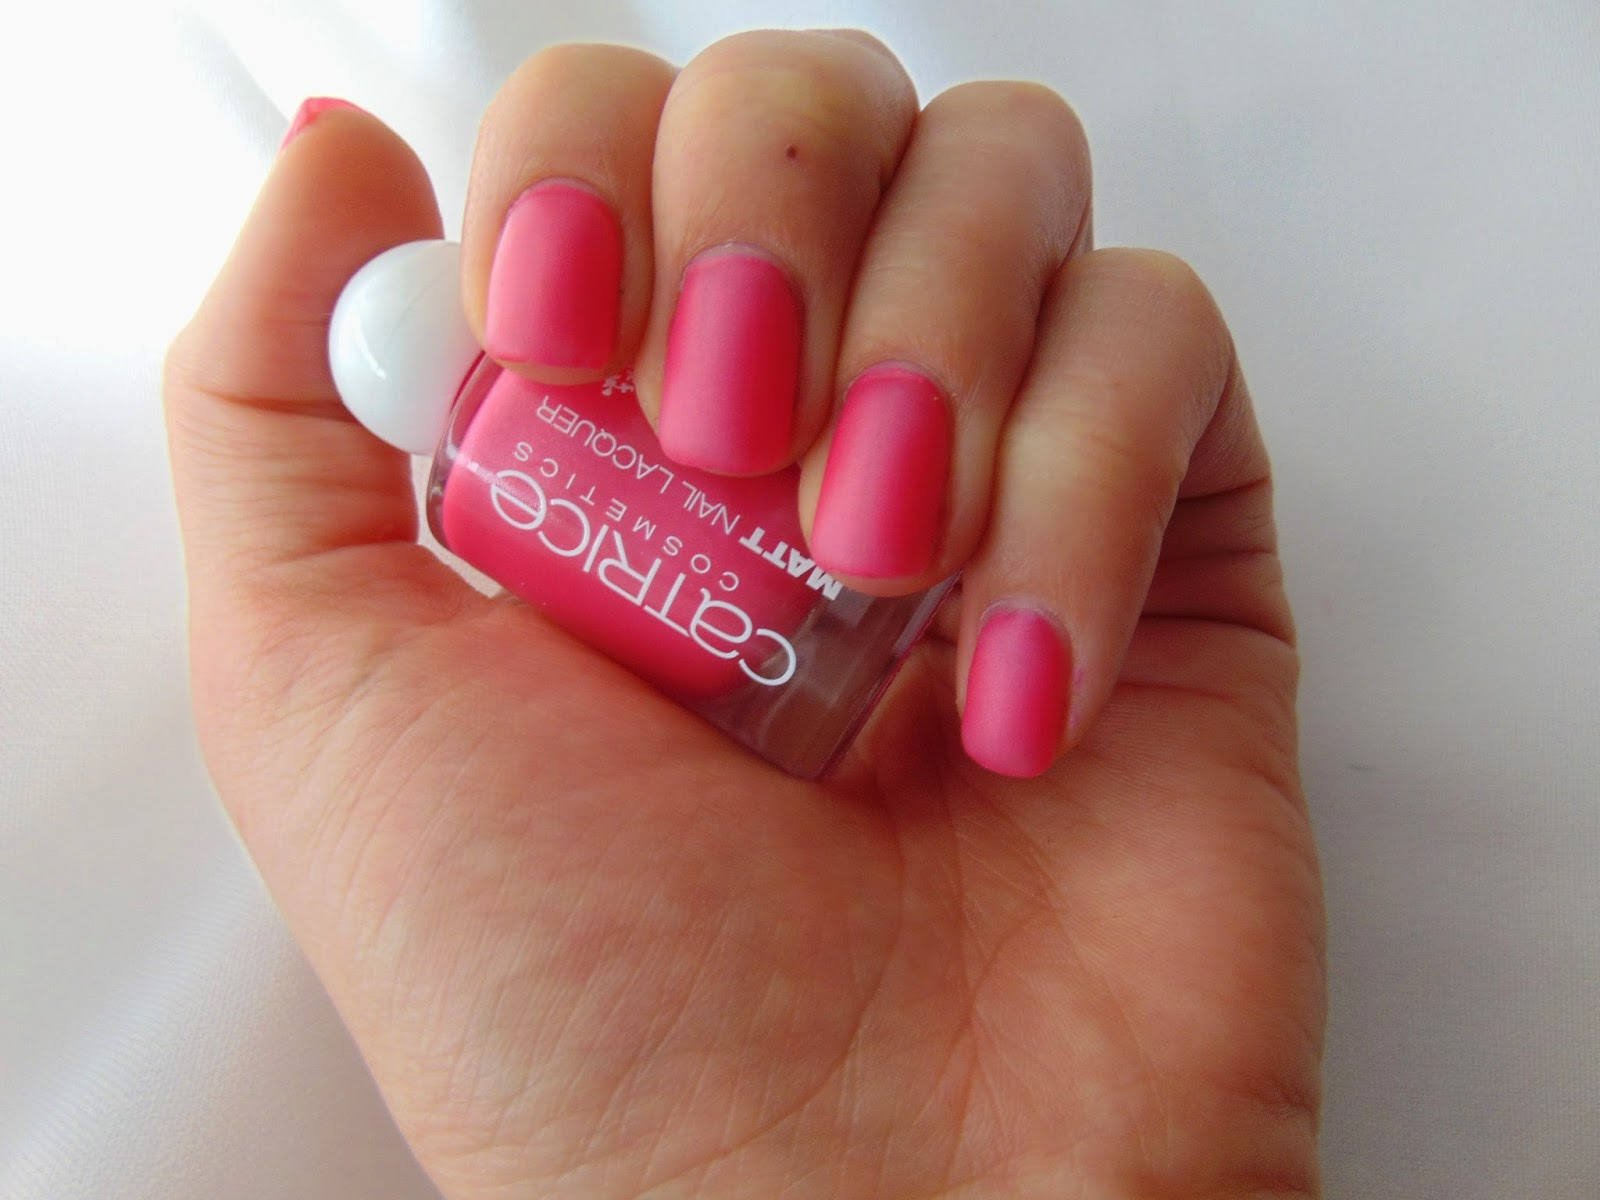 Catrice LE - Rock-O-CO - Matt Nail Lacquer Madame De Pinkadour on Nails - www.annitschkasblog.de